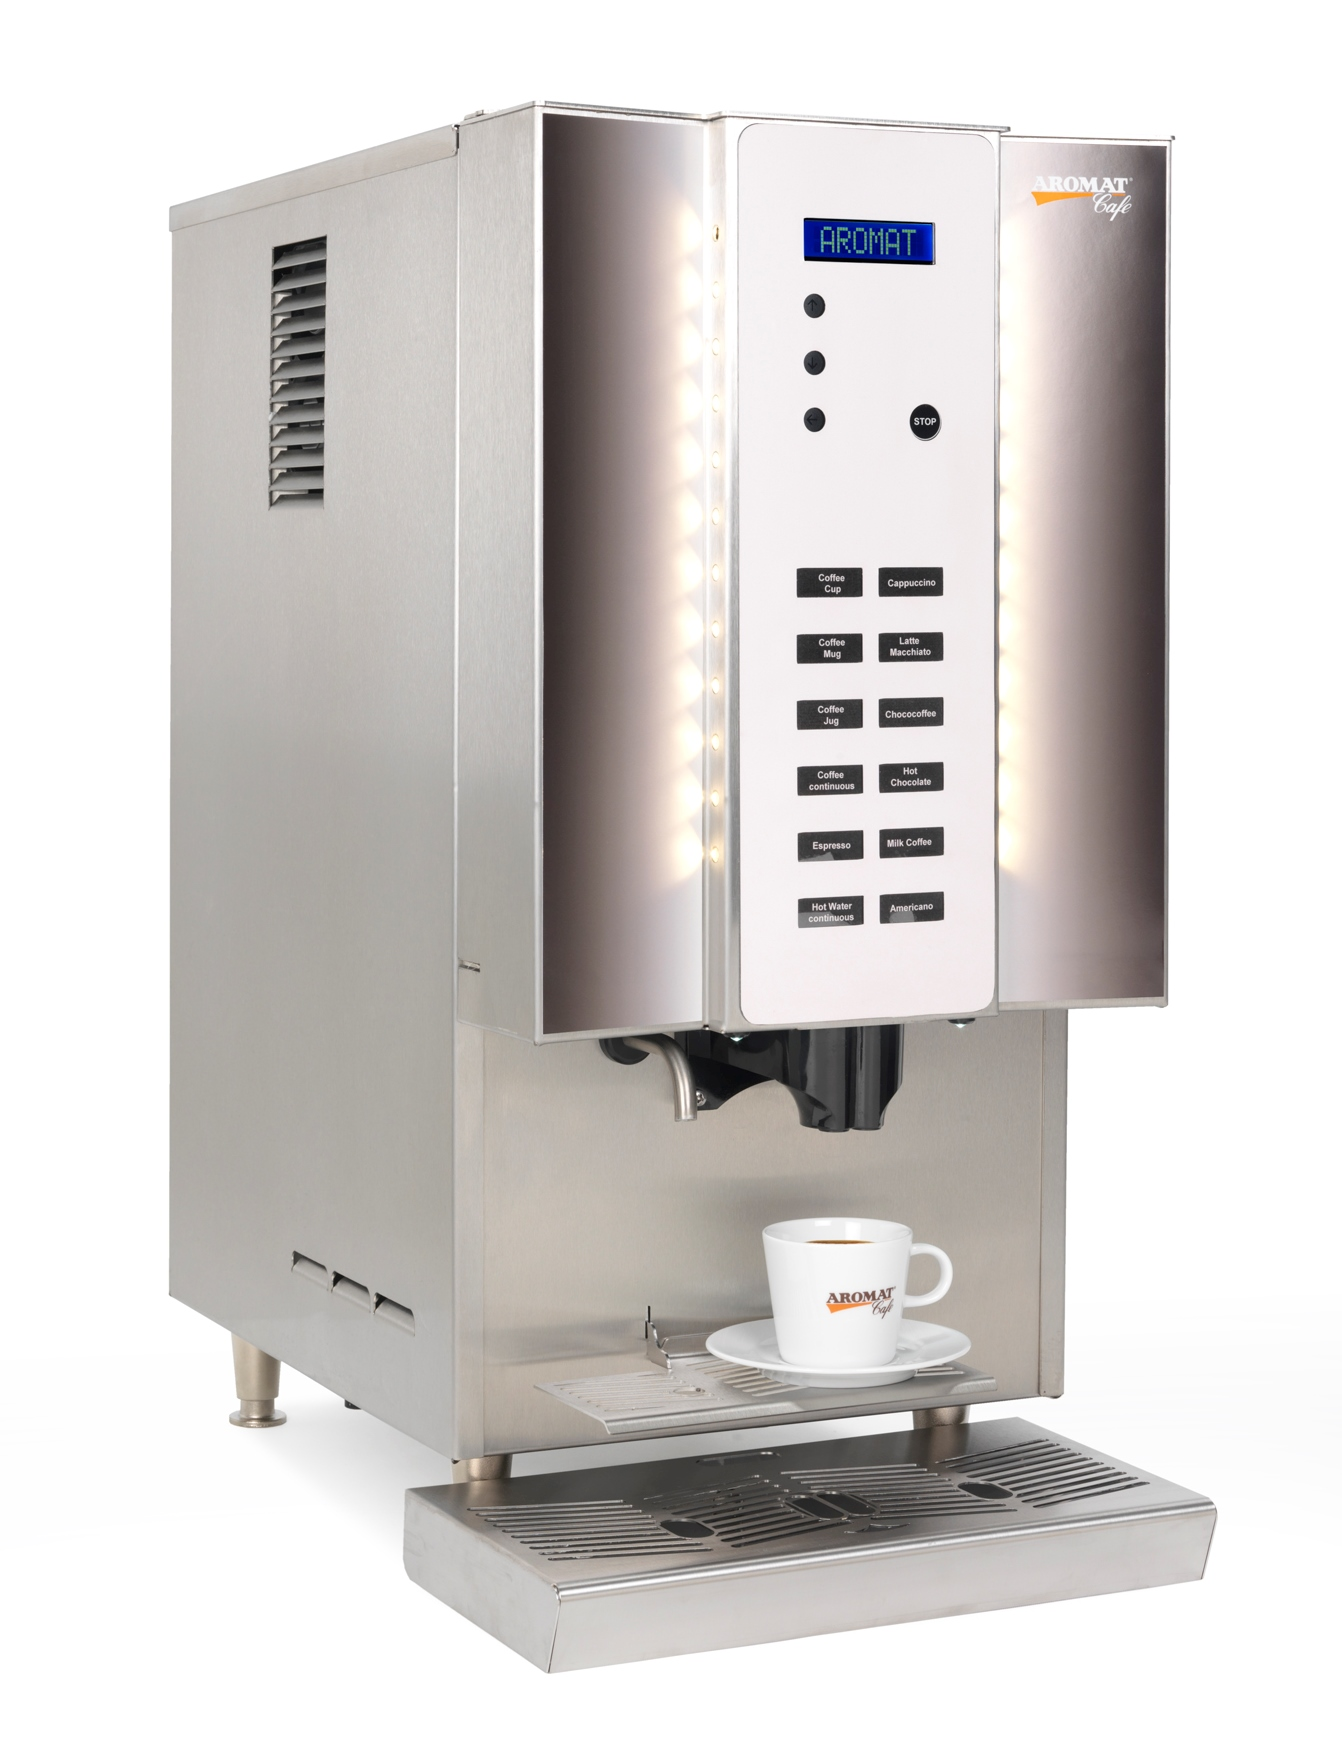 The AROMAT FK coffee machines are commercial coffee machines for use of the AROMAT liquid coffee concentrates. They are